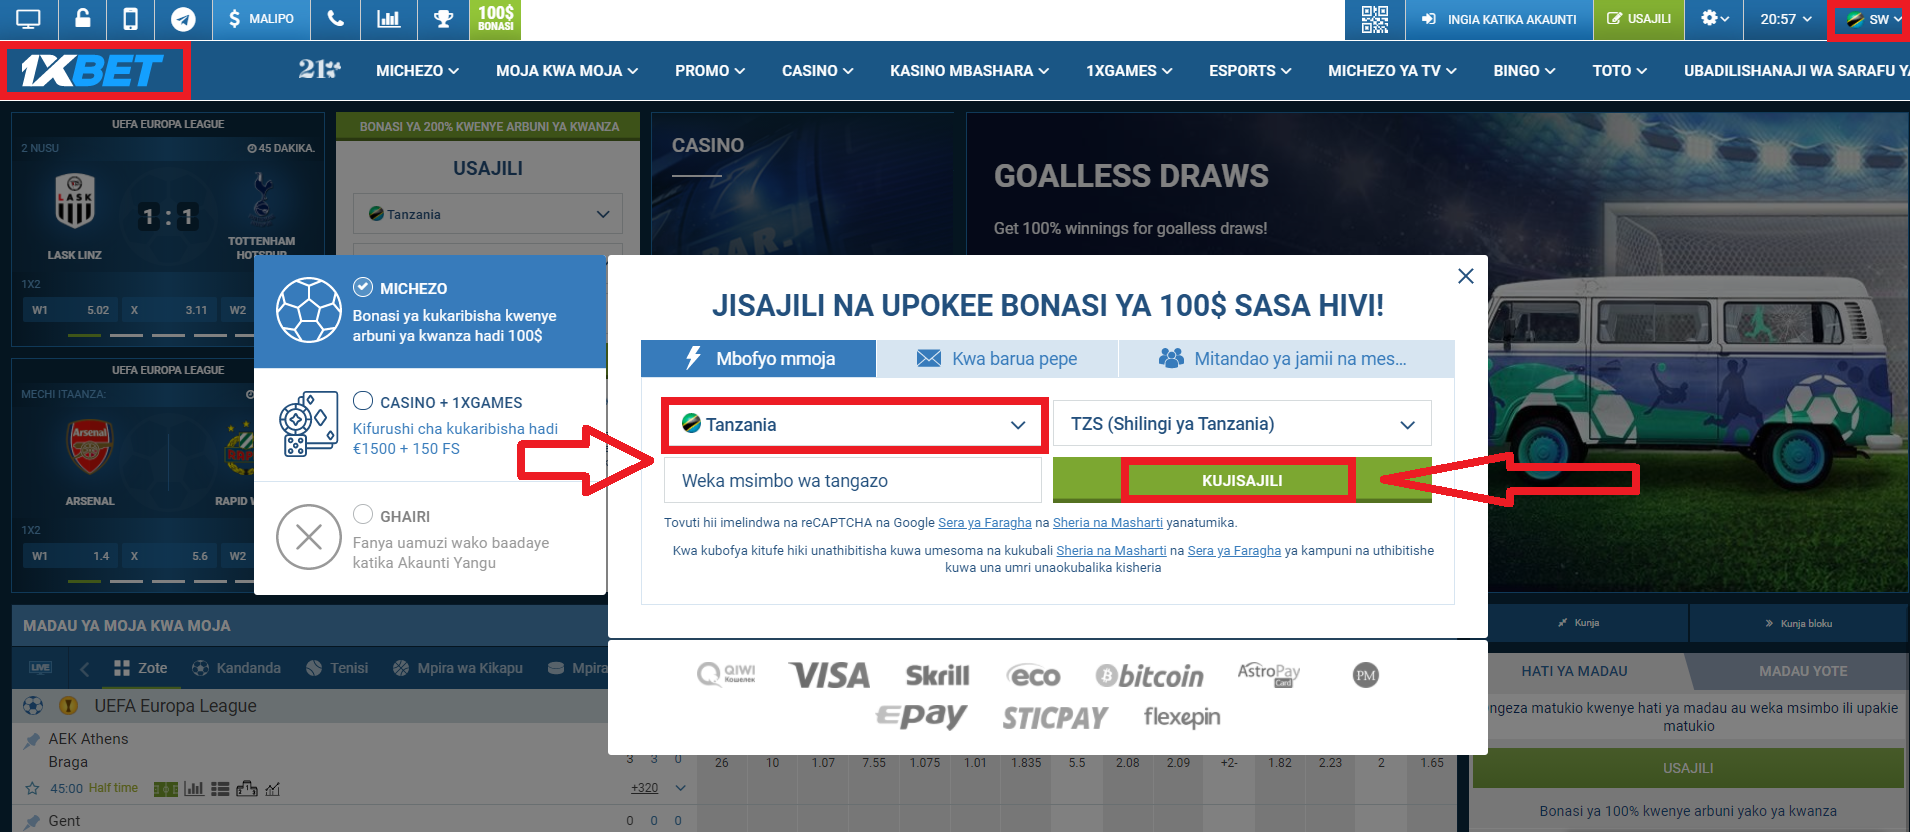 The Different 1xBet Login Tanzania Registration Methods